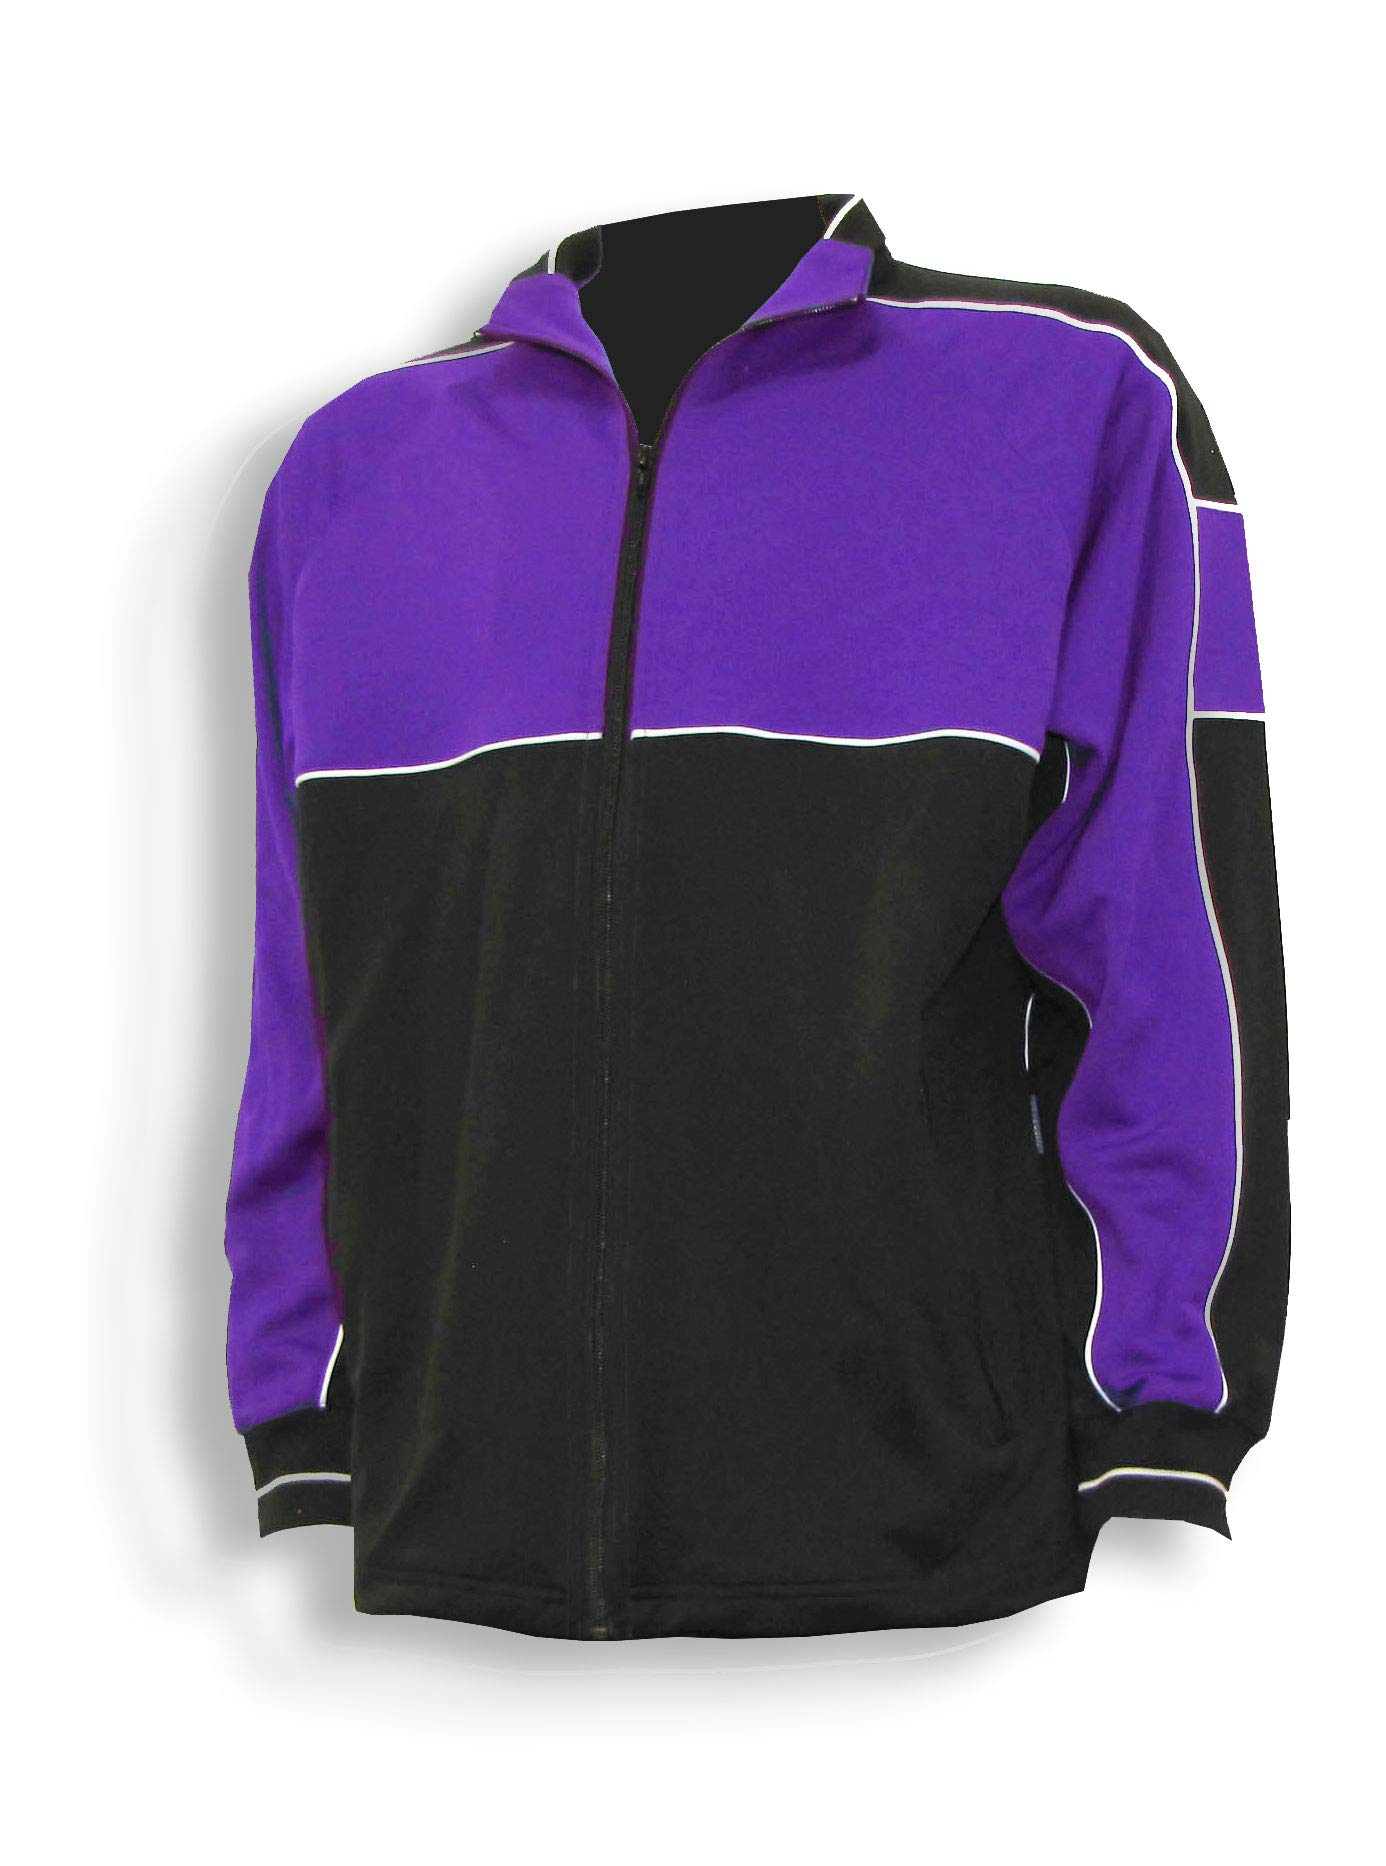 Code Four Athletics Sparta Soccer Poly-Knit Warmup Jacket - Size Adult L - Purple/Black by Code Four Athletics